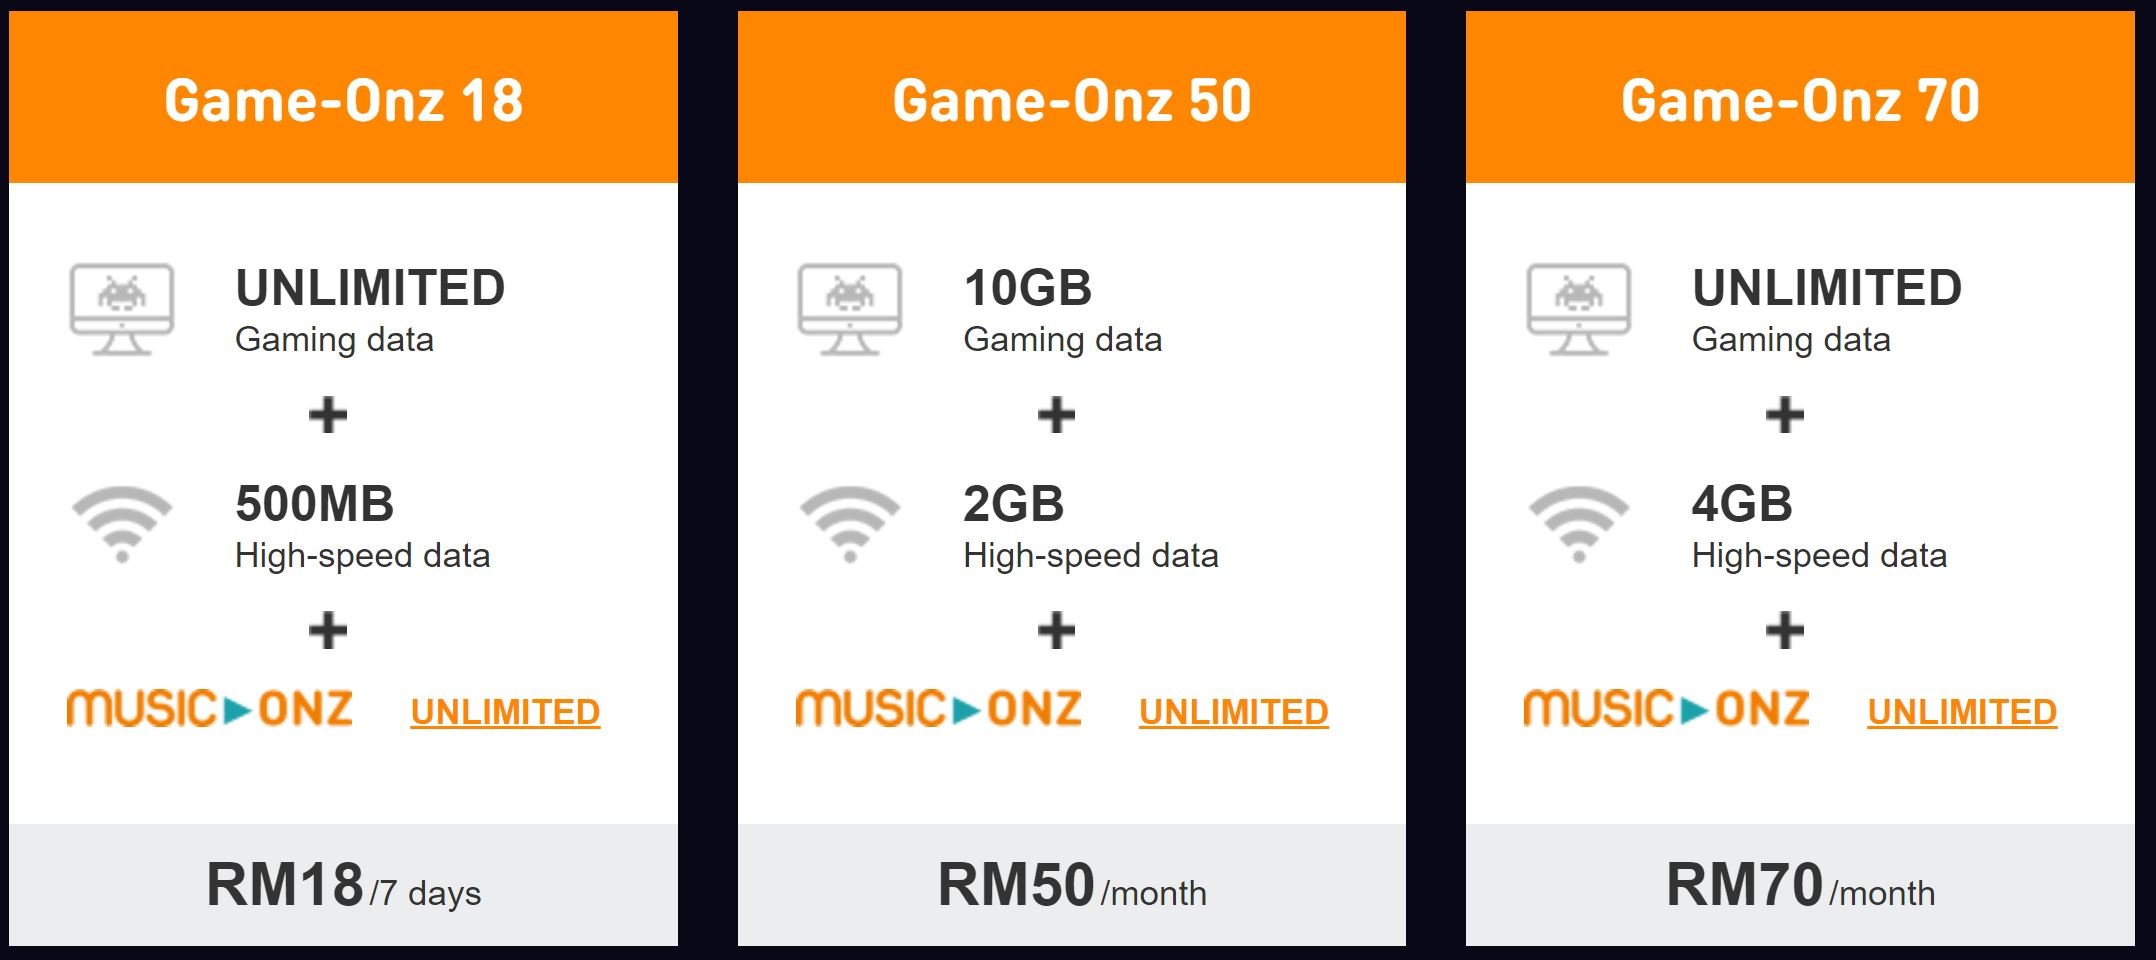 U Mobile Game-Onz Offers Unlimited Data for PC Gaming